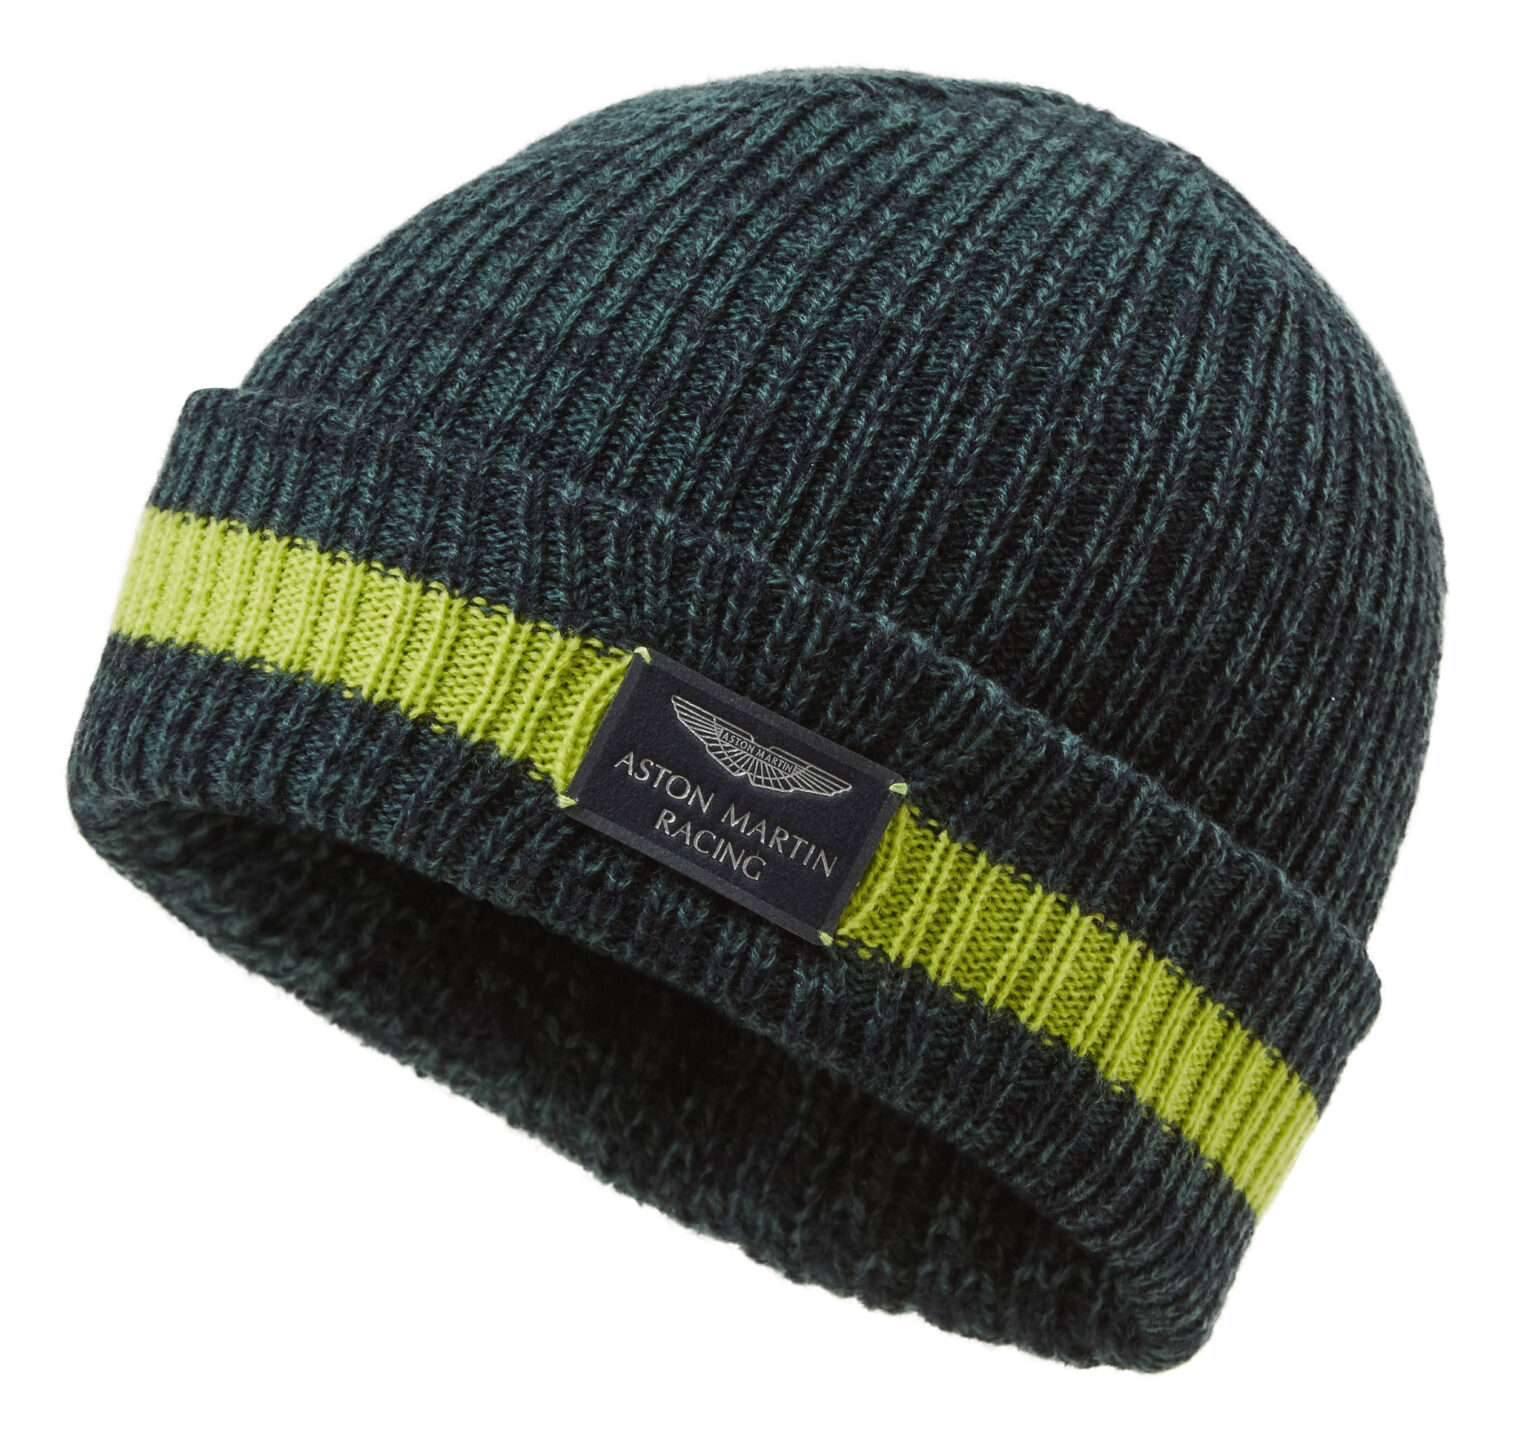 A14Kh Aston Martin Racing Knitted Hat